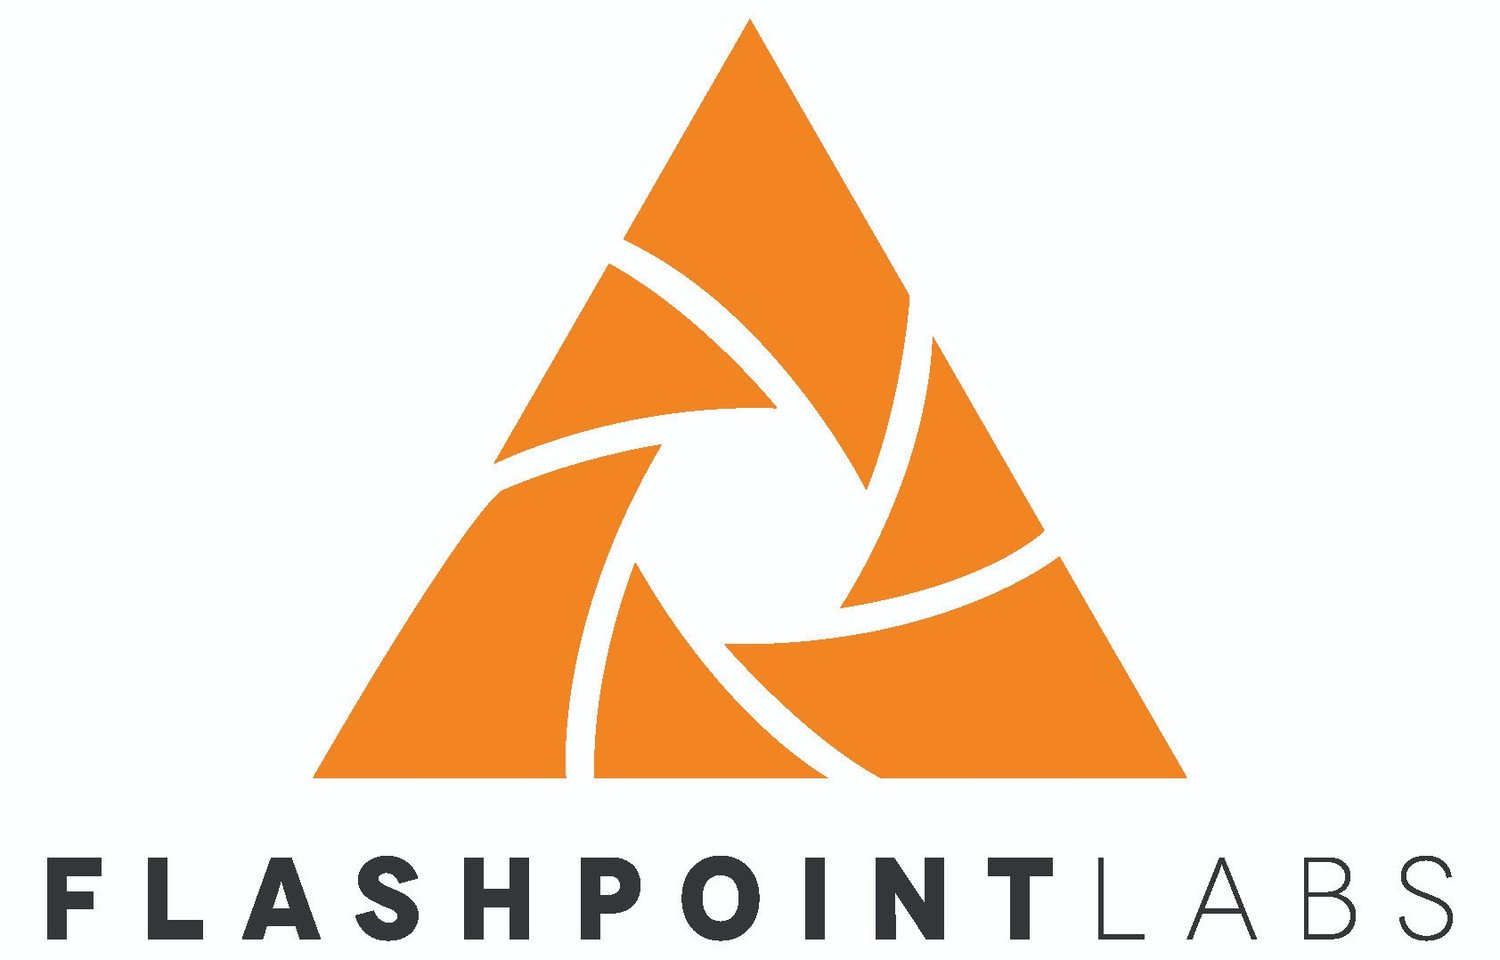 Flashpoint Labs